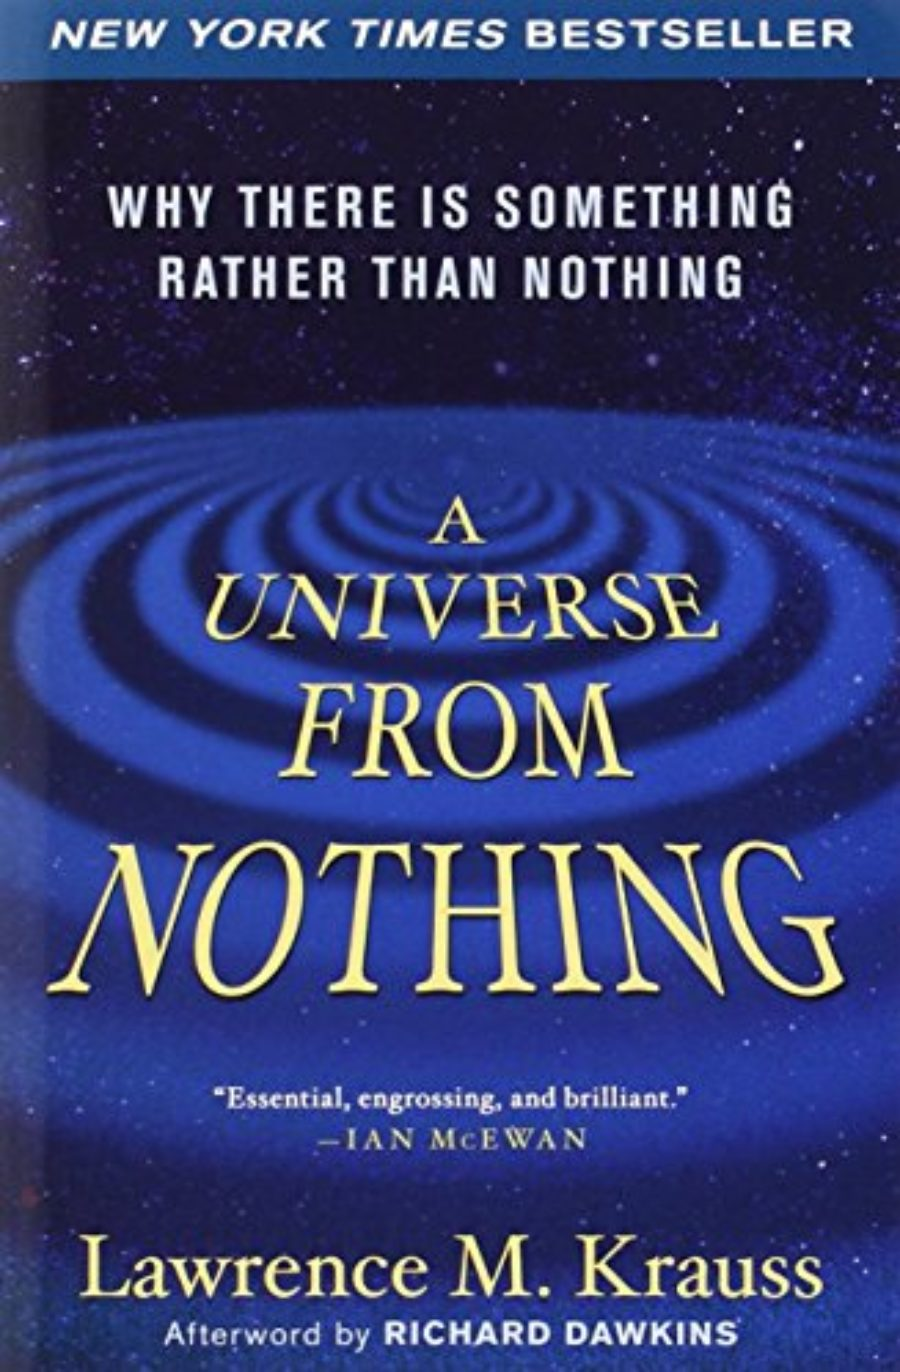 Cover of A Universe from Nothing: Why There Is Something Rather than Nothing